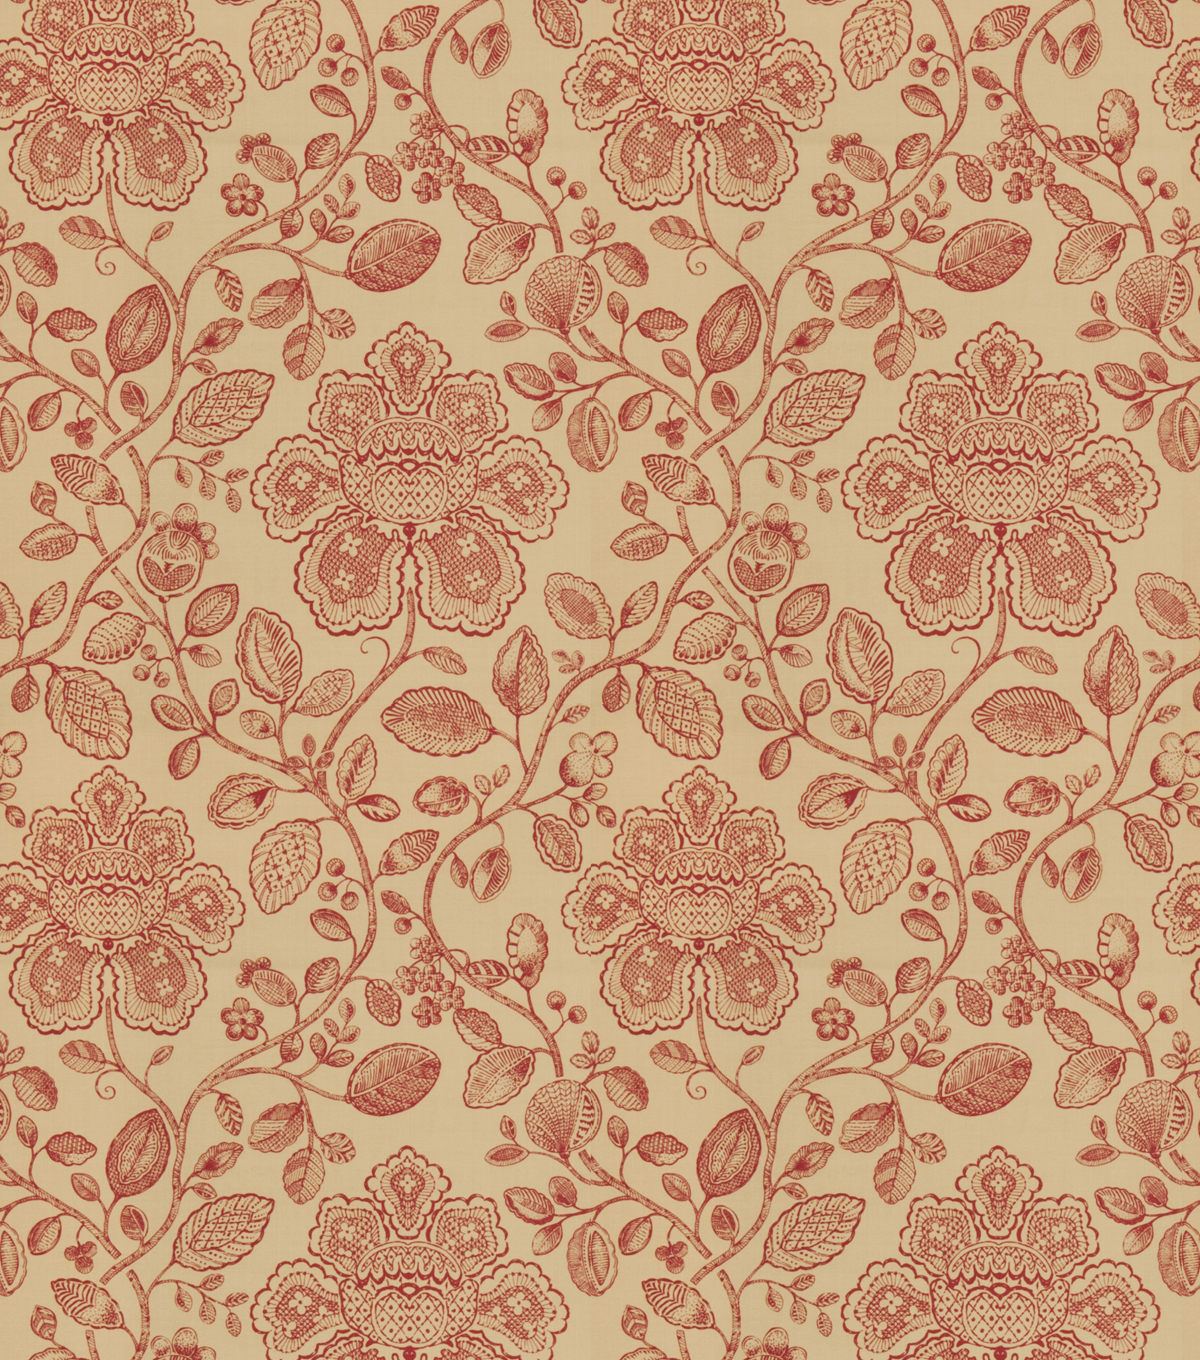 Home Decor 8x8 Fabric Swatch-Eaton Square Ragtime Tabasco